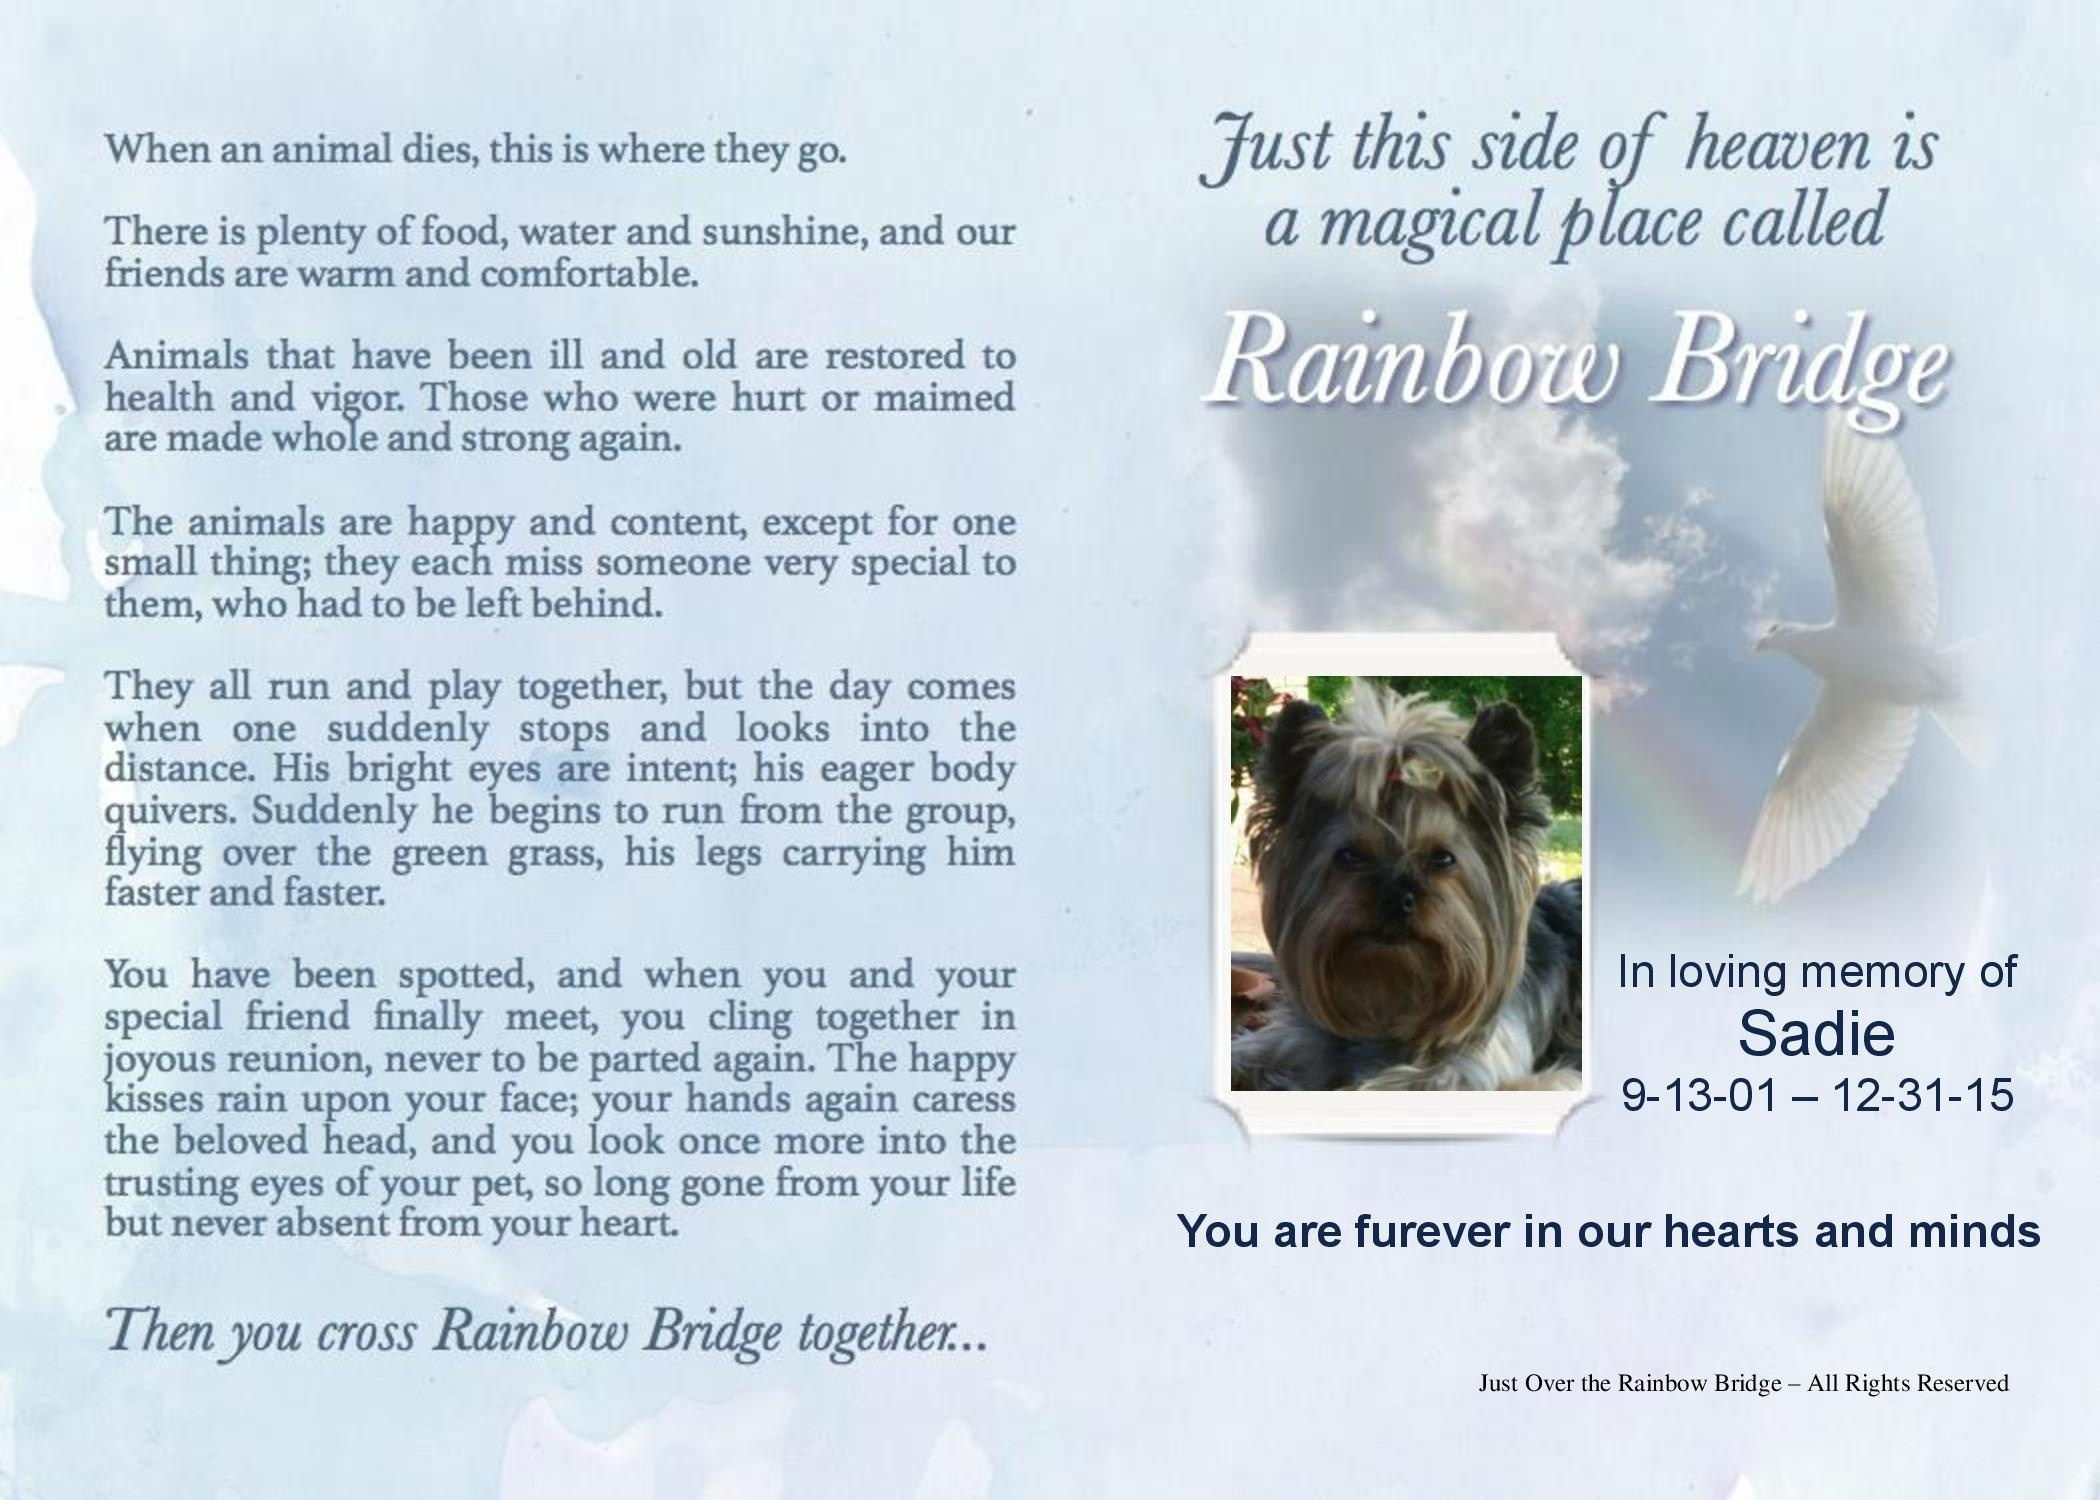 Just Over The Rainbow Bridge1-3567Stamper, Michelle - Sadie-FINAL APPROVED.jpg454